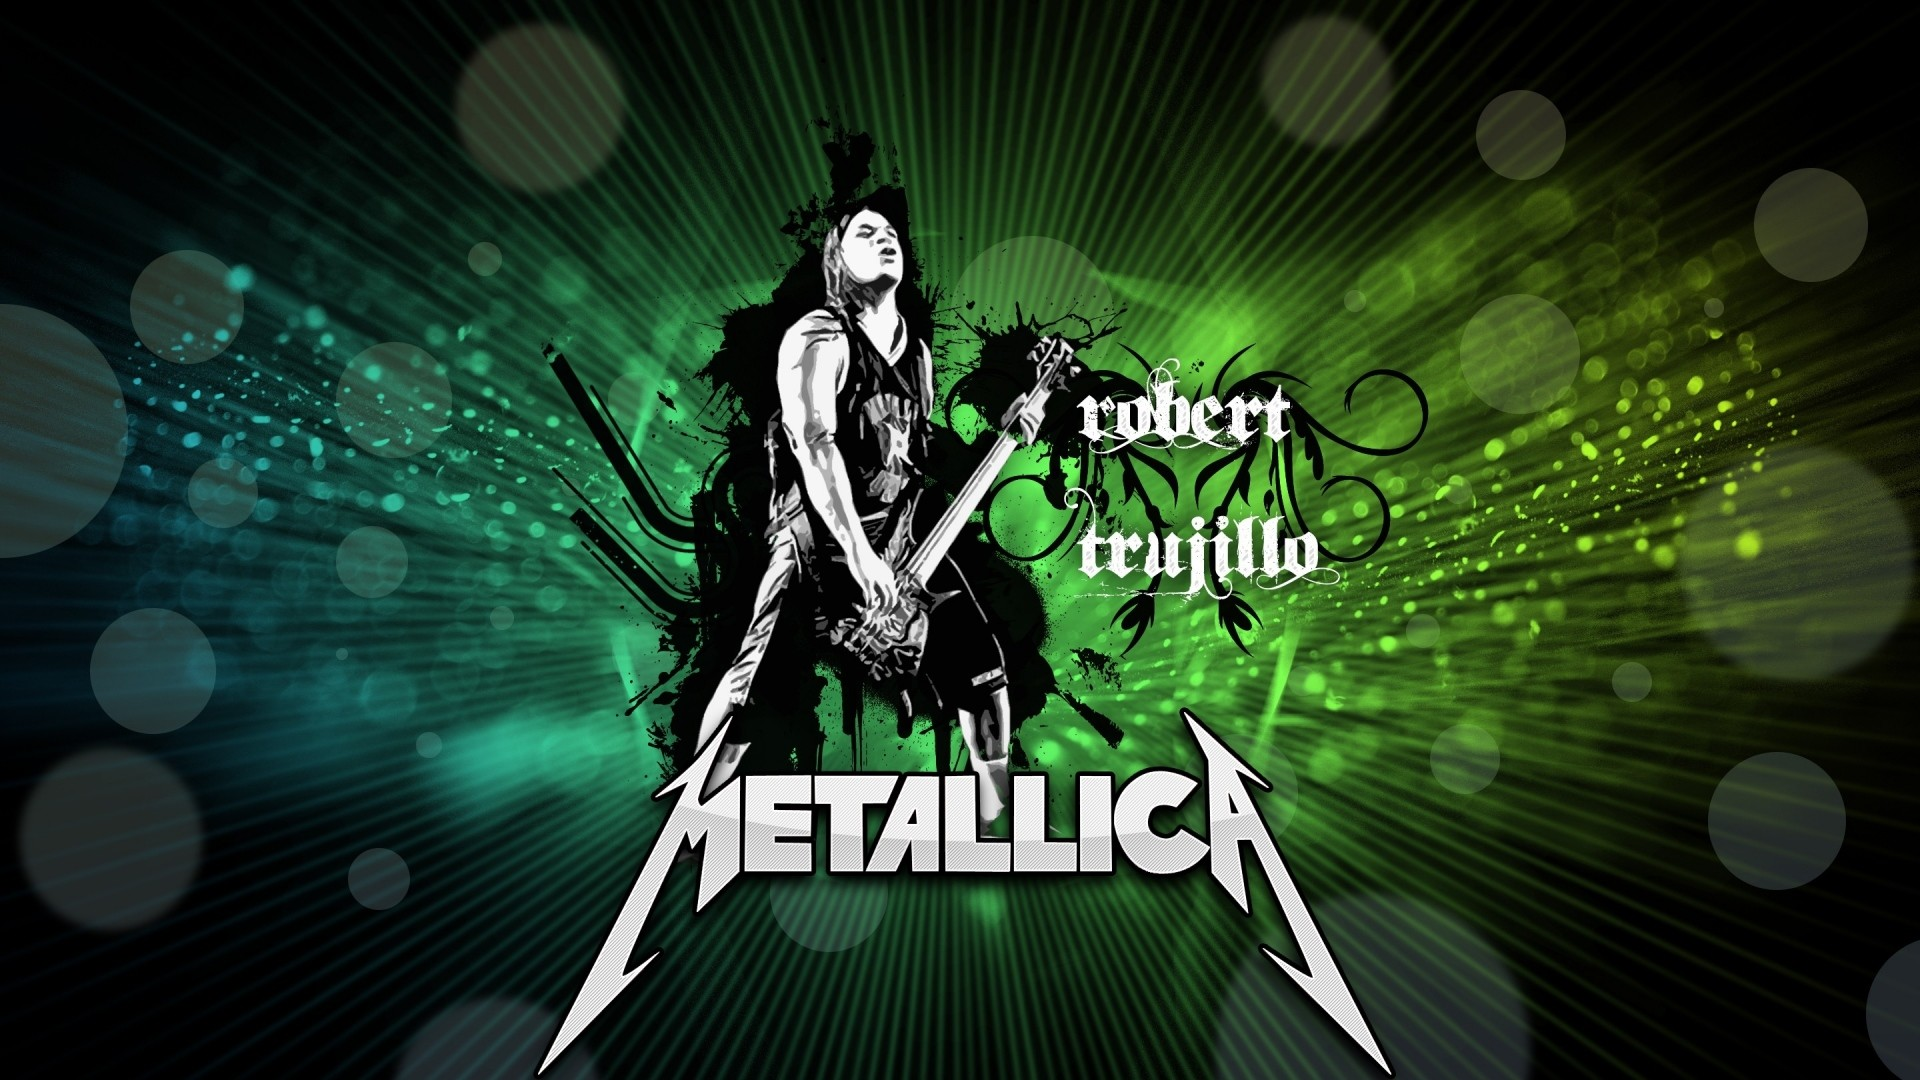 Metallica Master Of Puppets Wallpaper (60+ Images